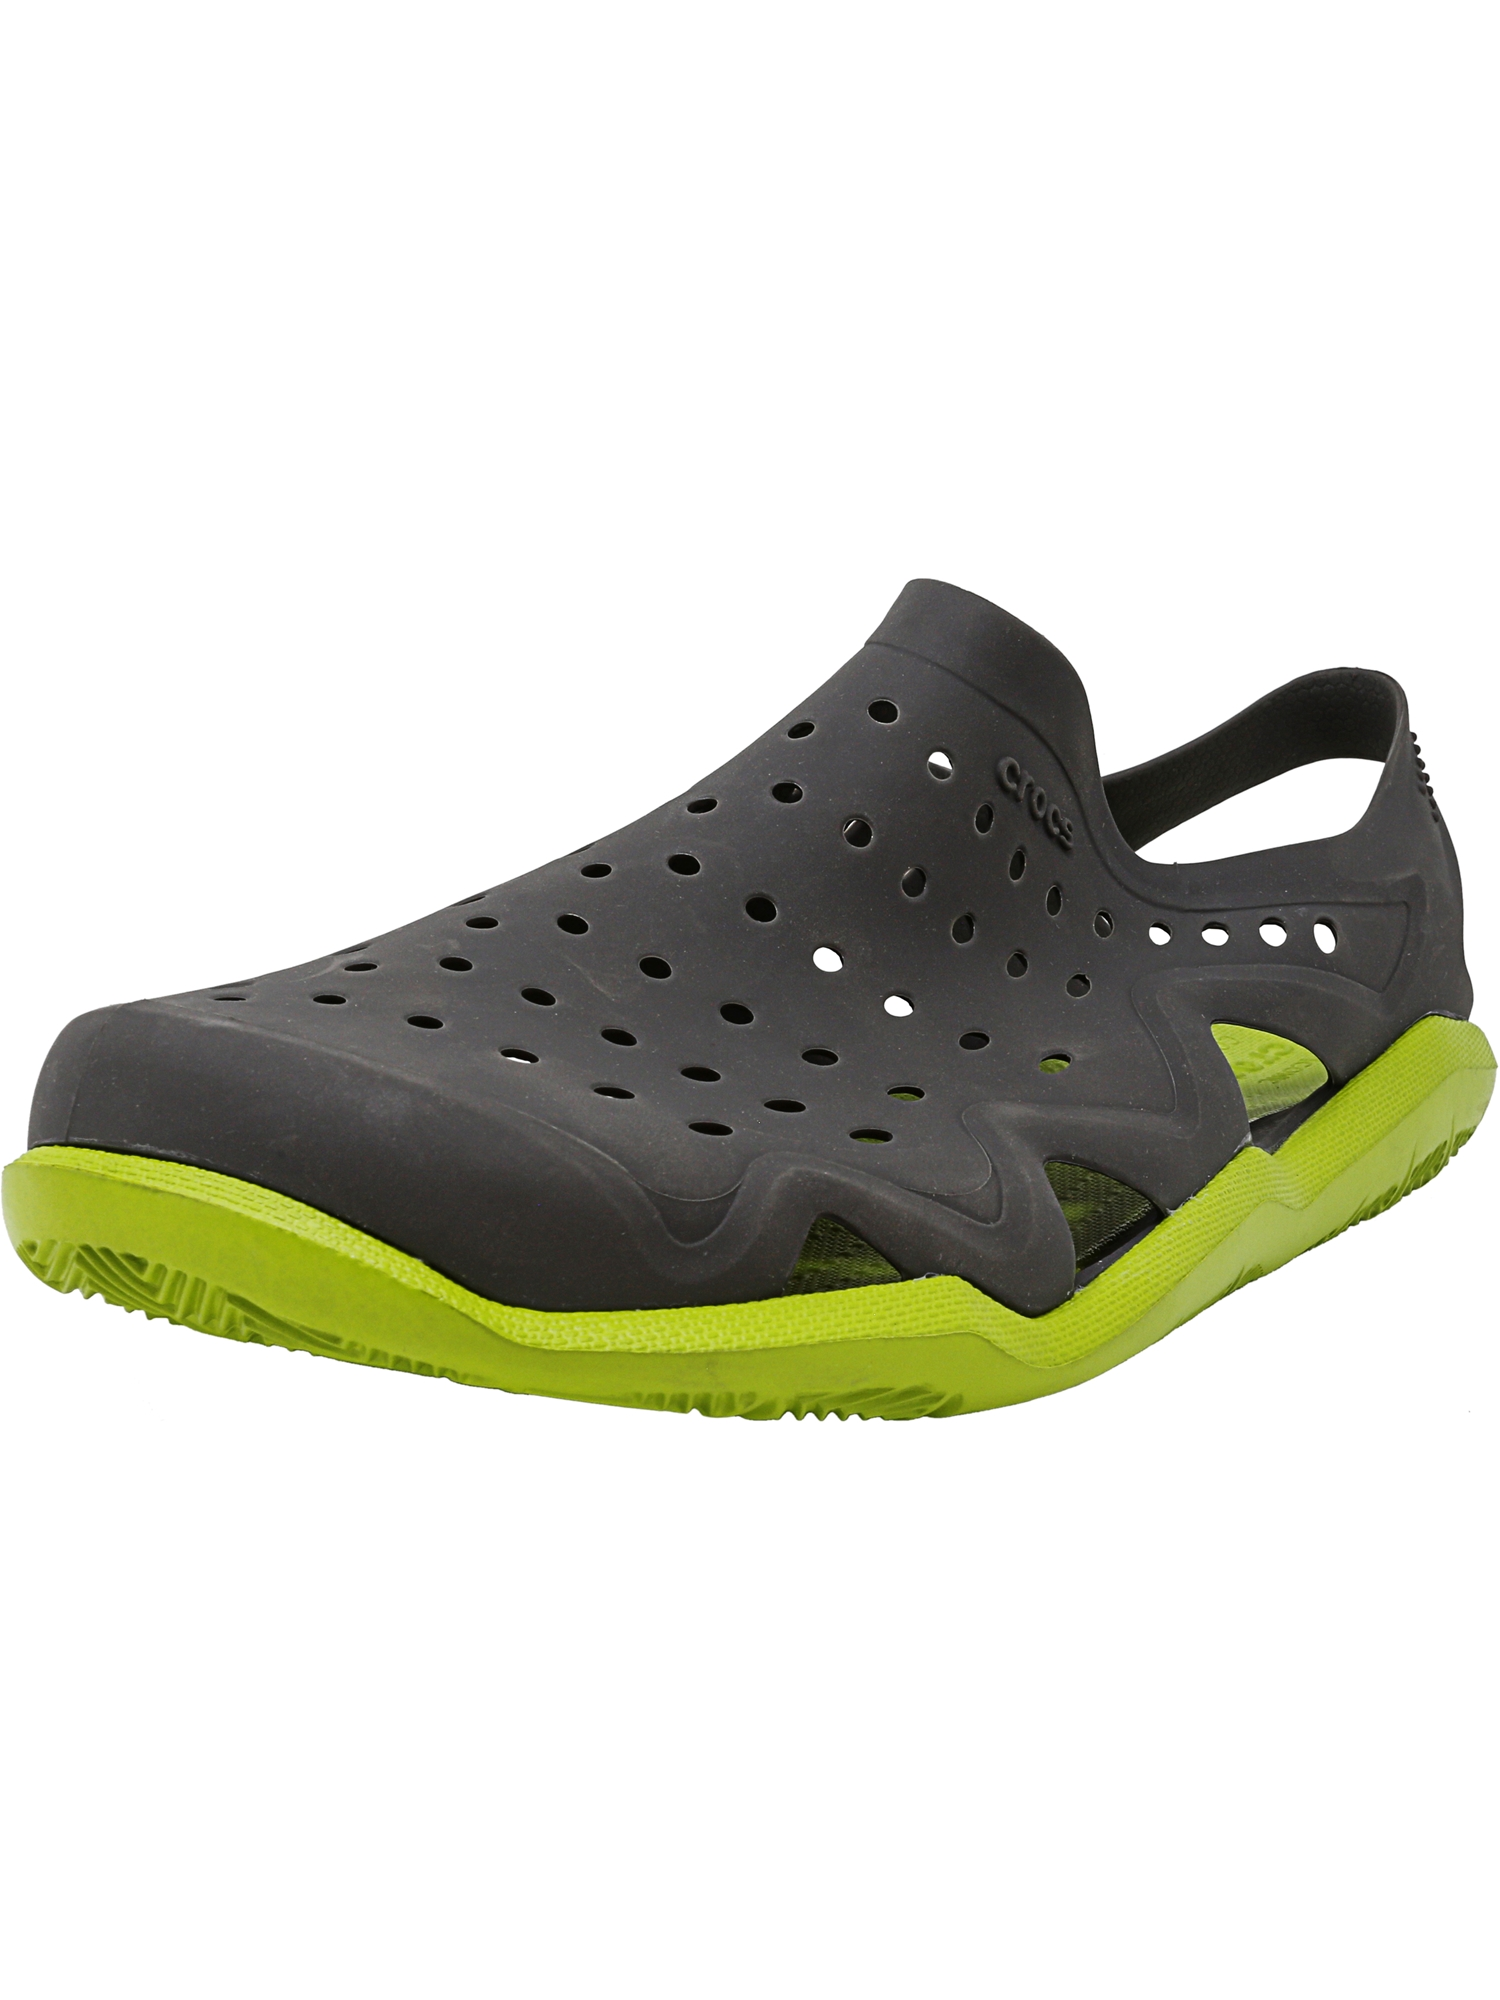 a26d965a26a4c9 Crocs Men s Swiftwater Wave Graphite   Volt Green Ankle-High Rubber Sandal  - 5M